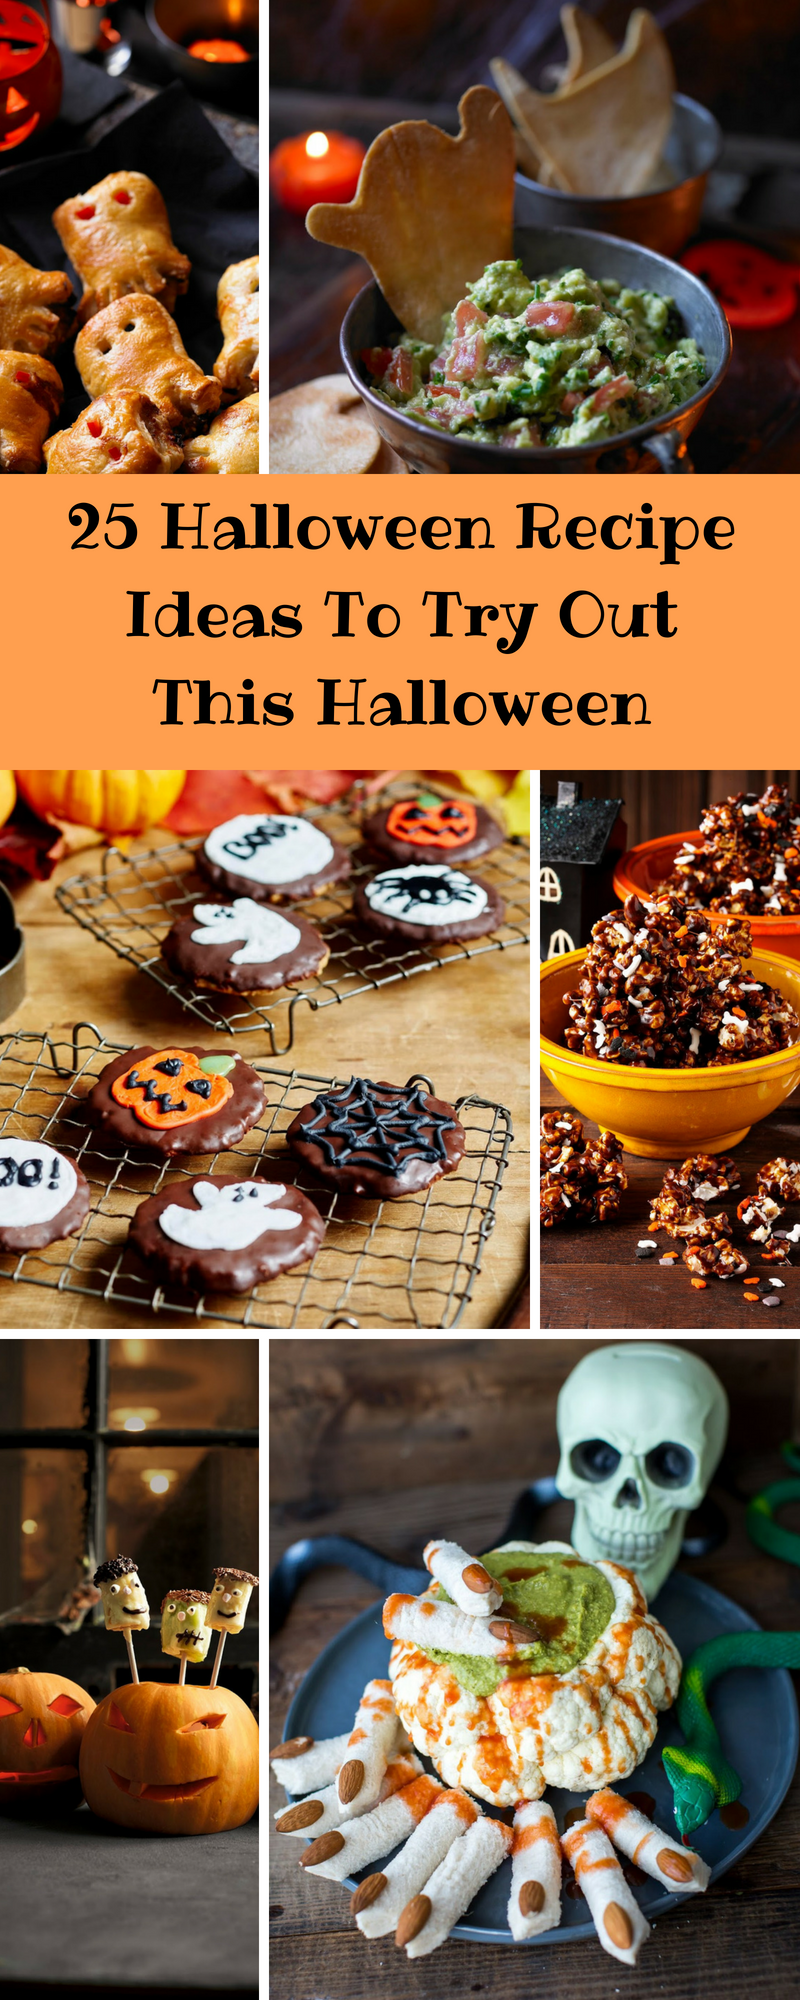 25 halloween recipe ideas to try out this halloween | halloween